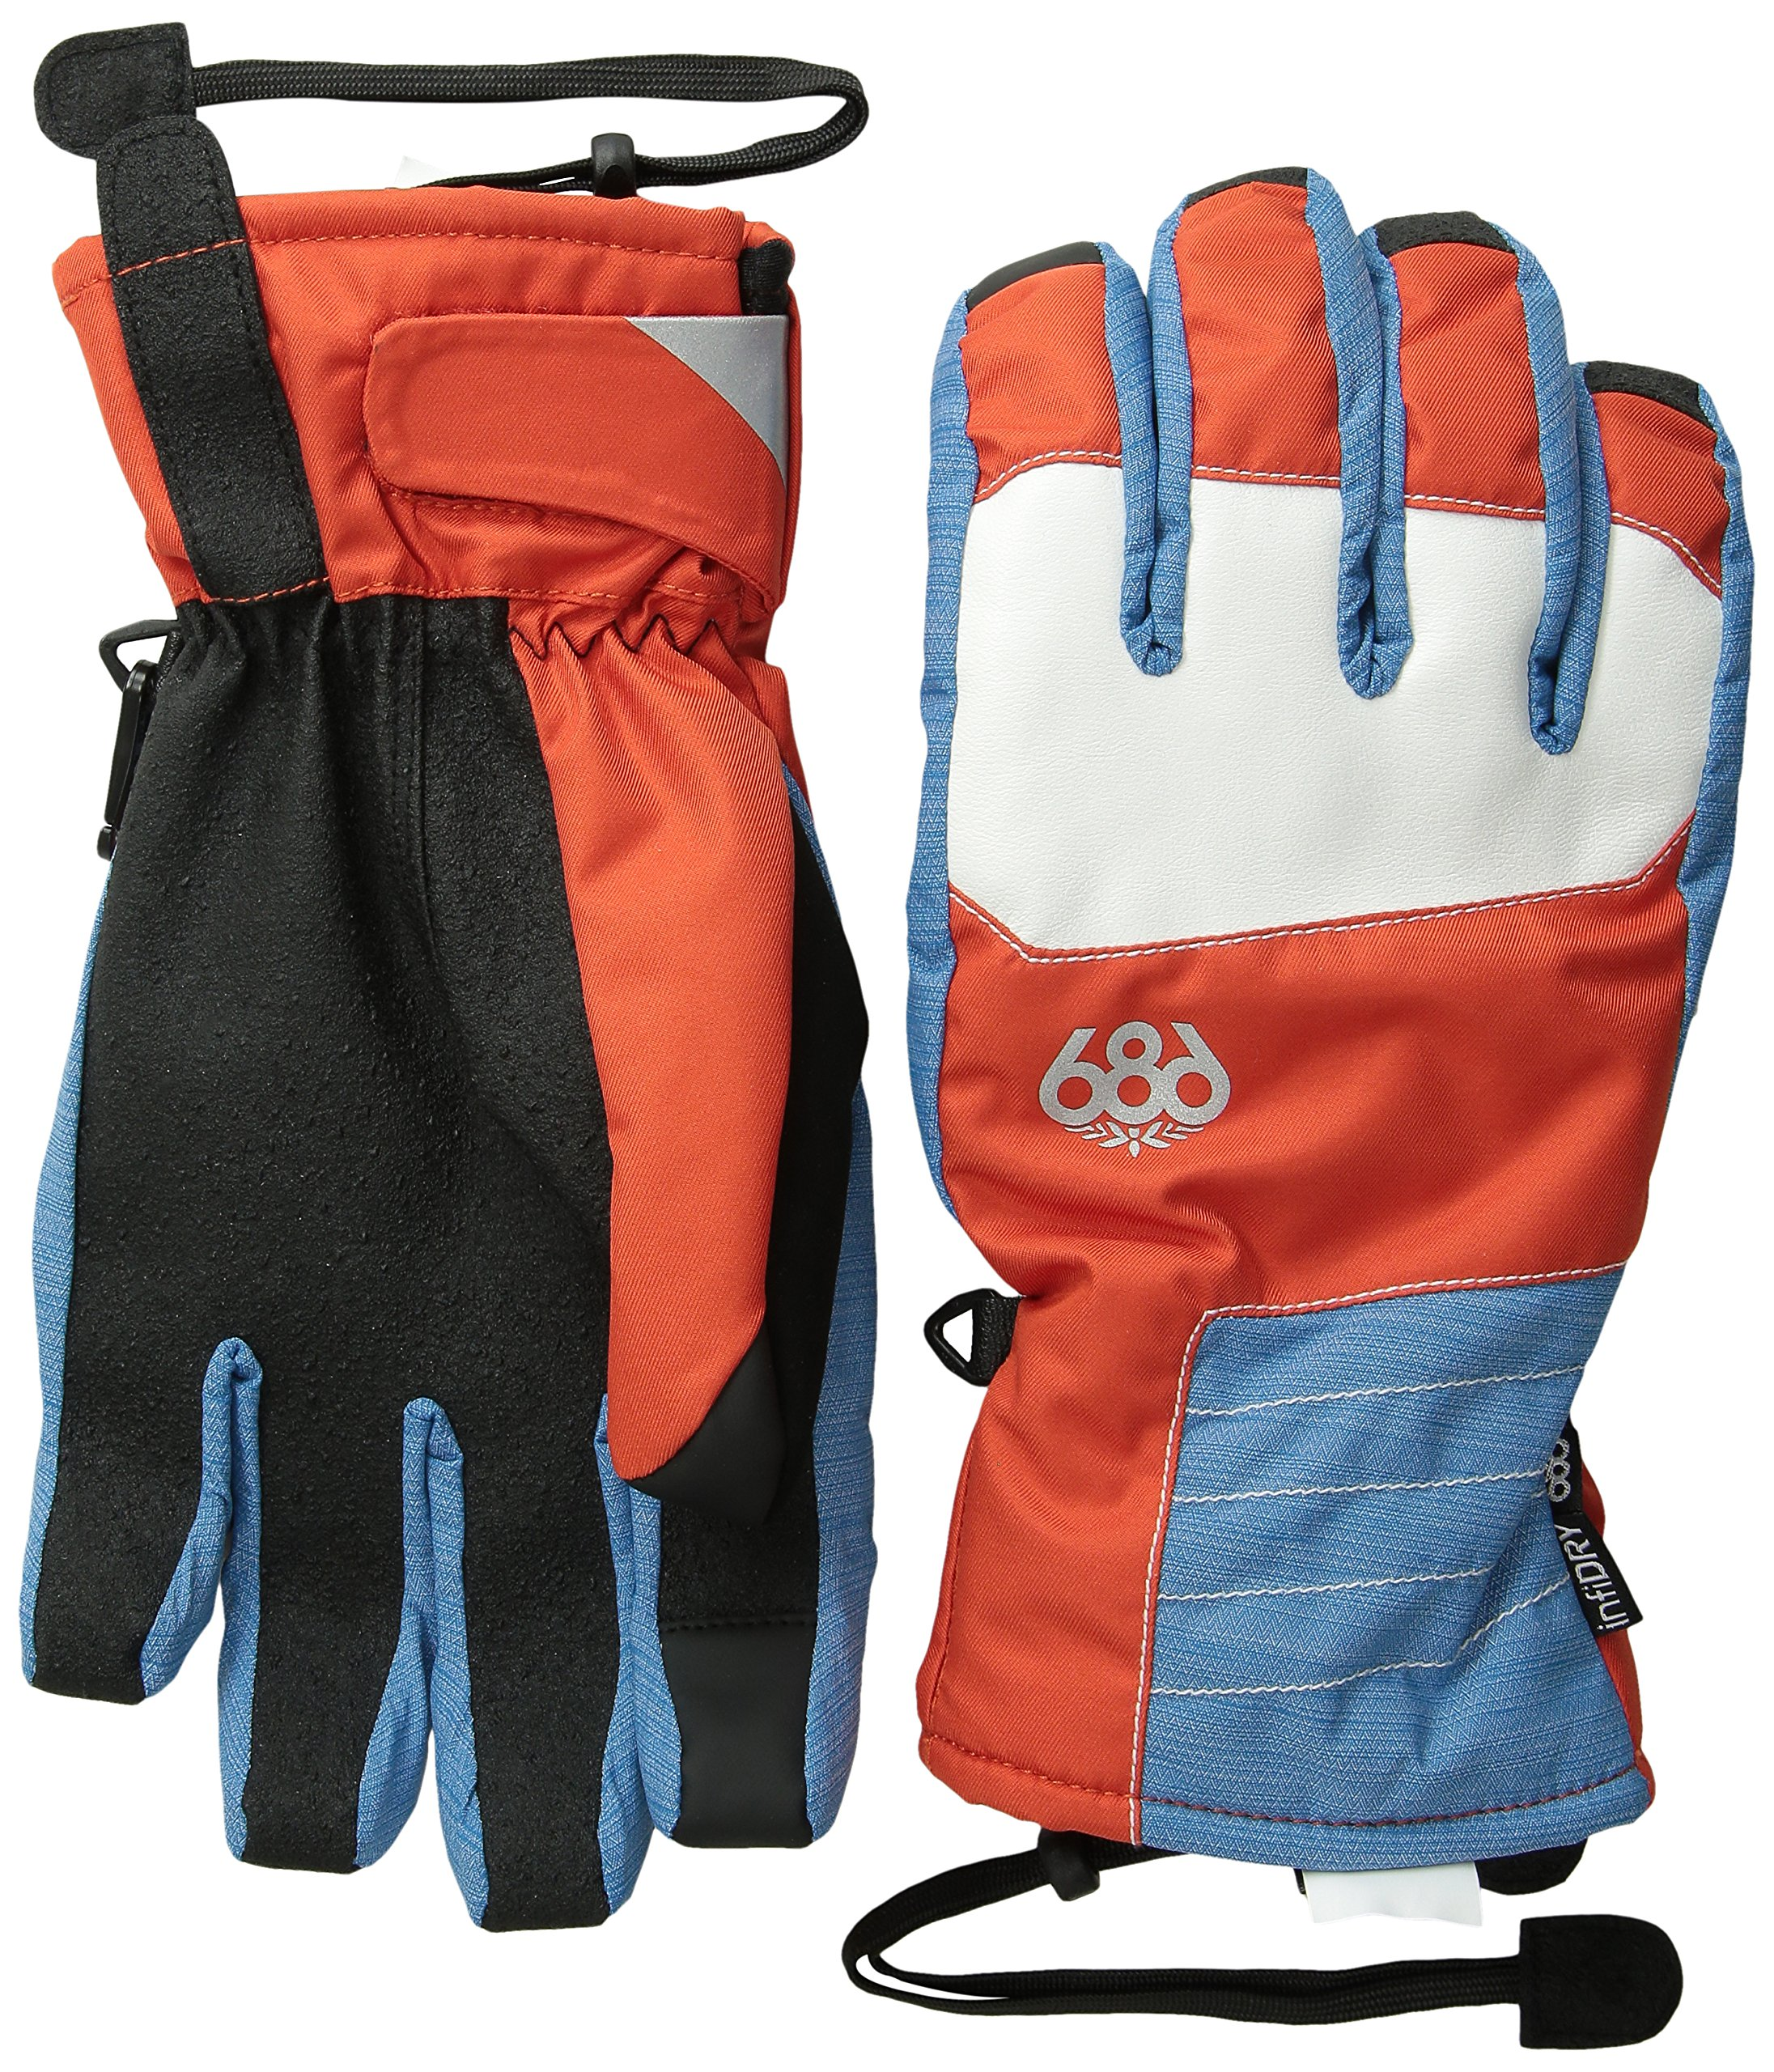 686 Men's Sammy Luebke Burner Glove, Burnt Orange, Medium